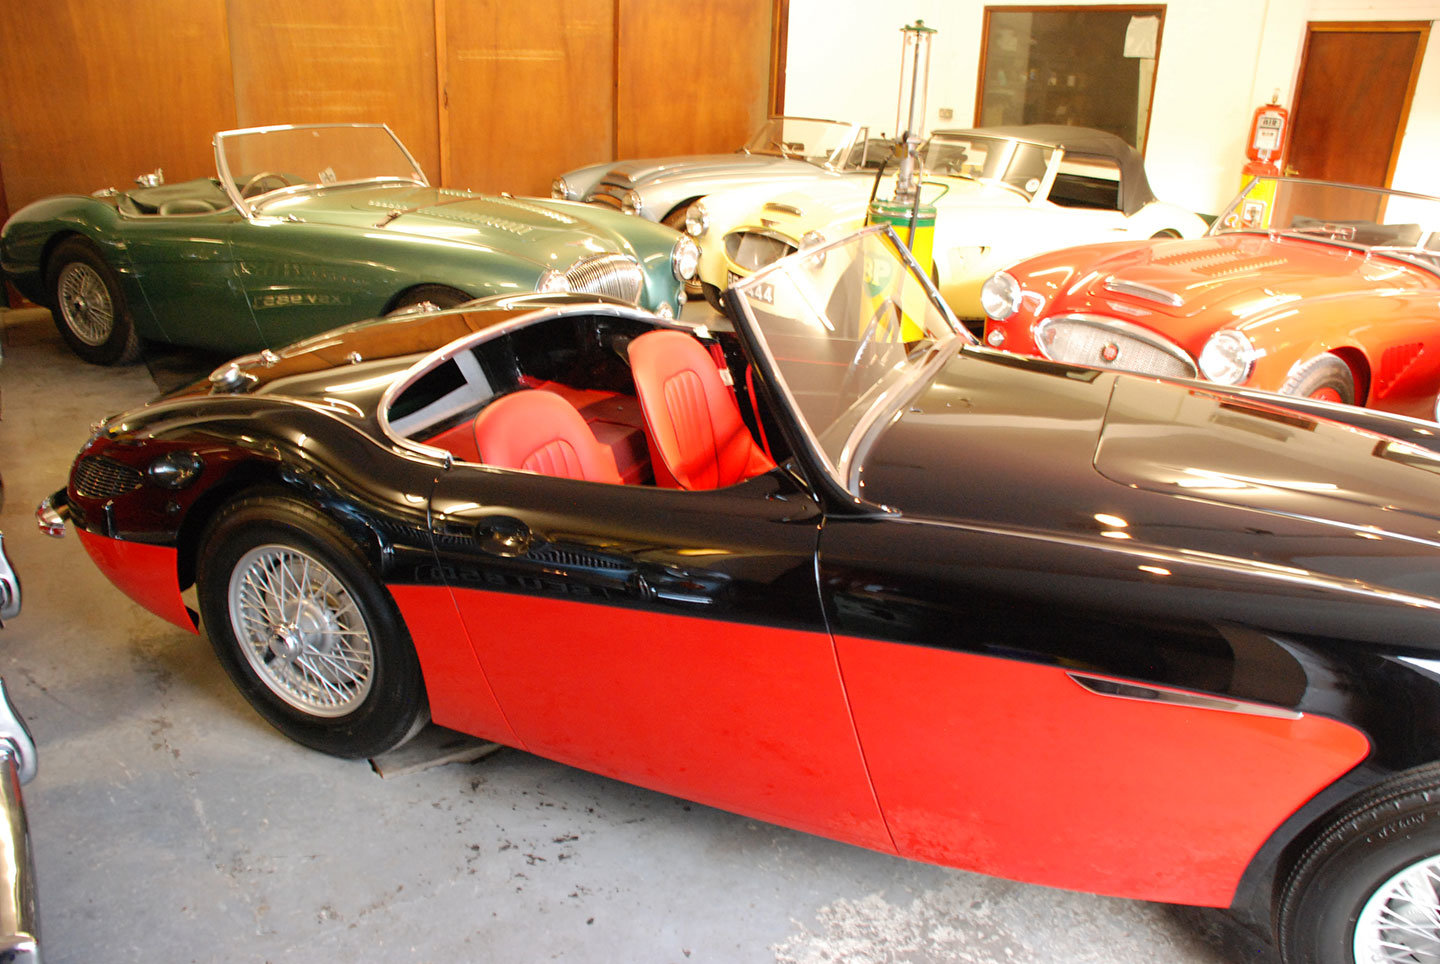 1961 Austin Healey 3000 Mk 2 BN7 2 seater tri carb For Sale (picture 3 of 10)